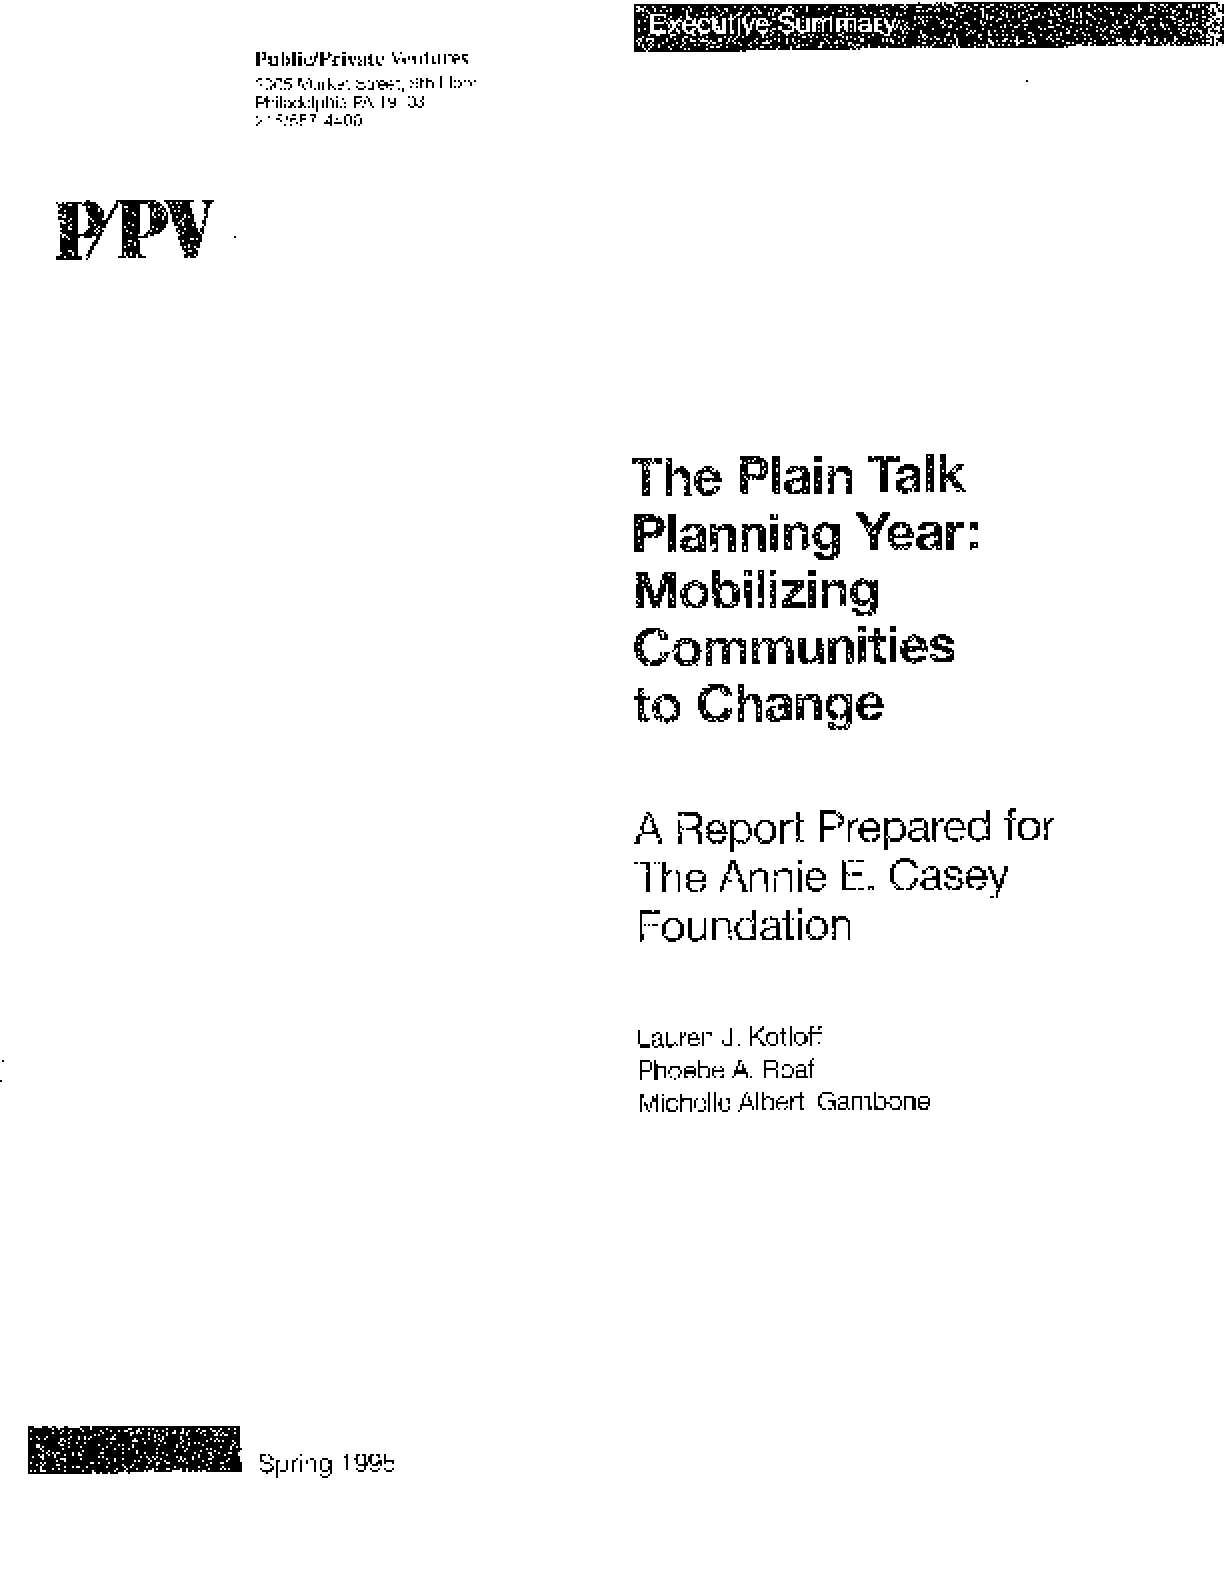 The Plain Talk Planning Year: Mobilizing Communities to Change. A Report Prepared for The Annie E. Casey Foundation